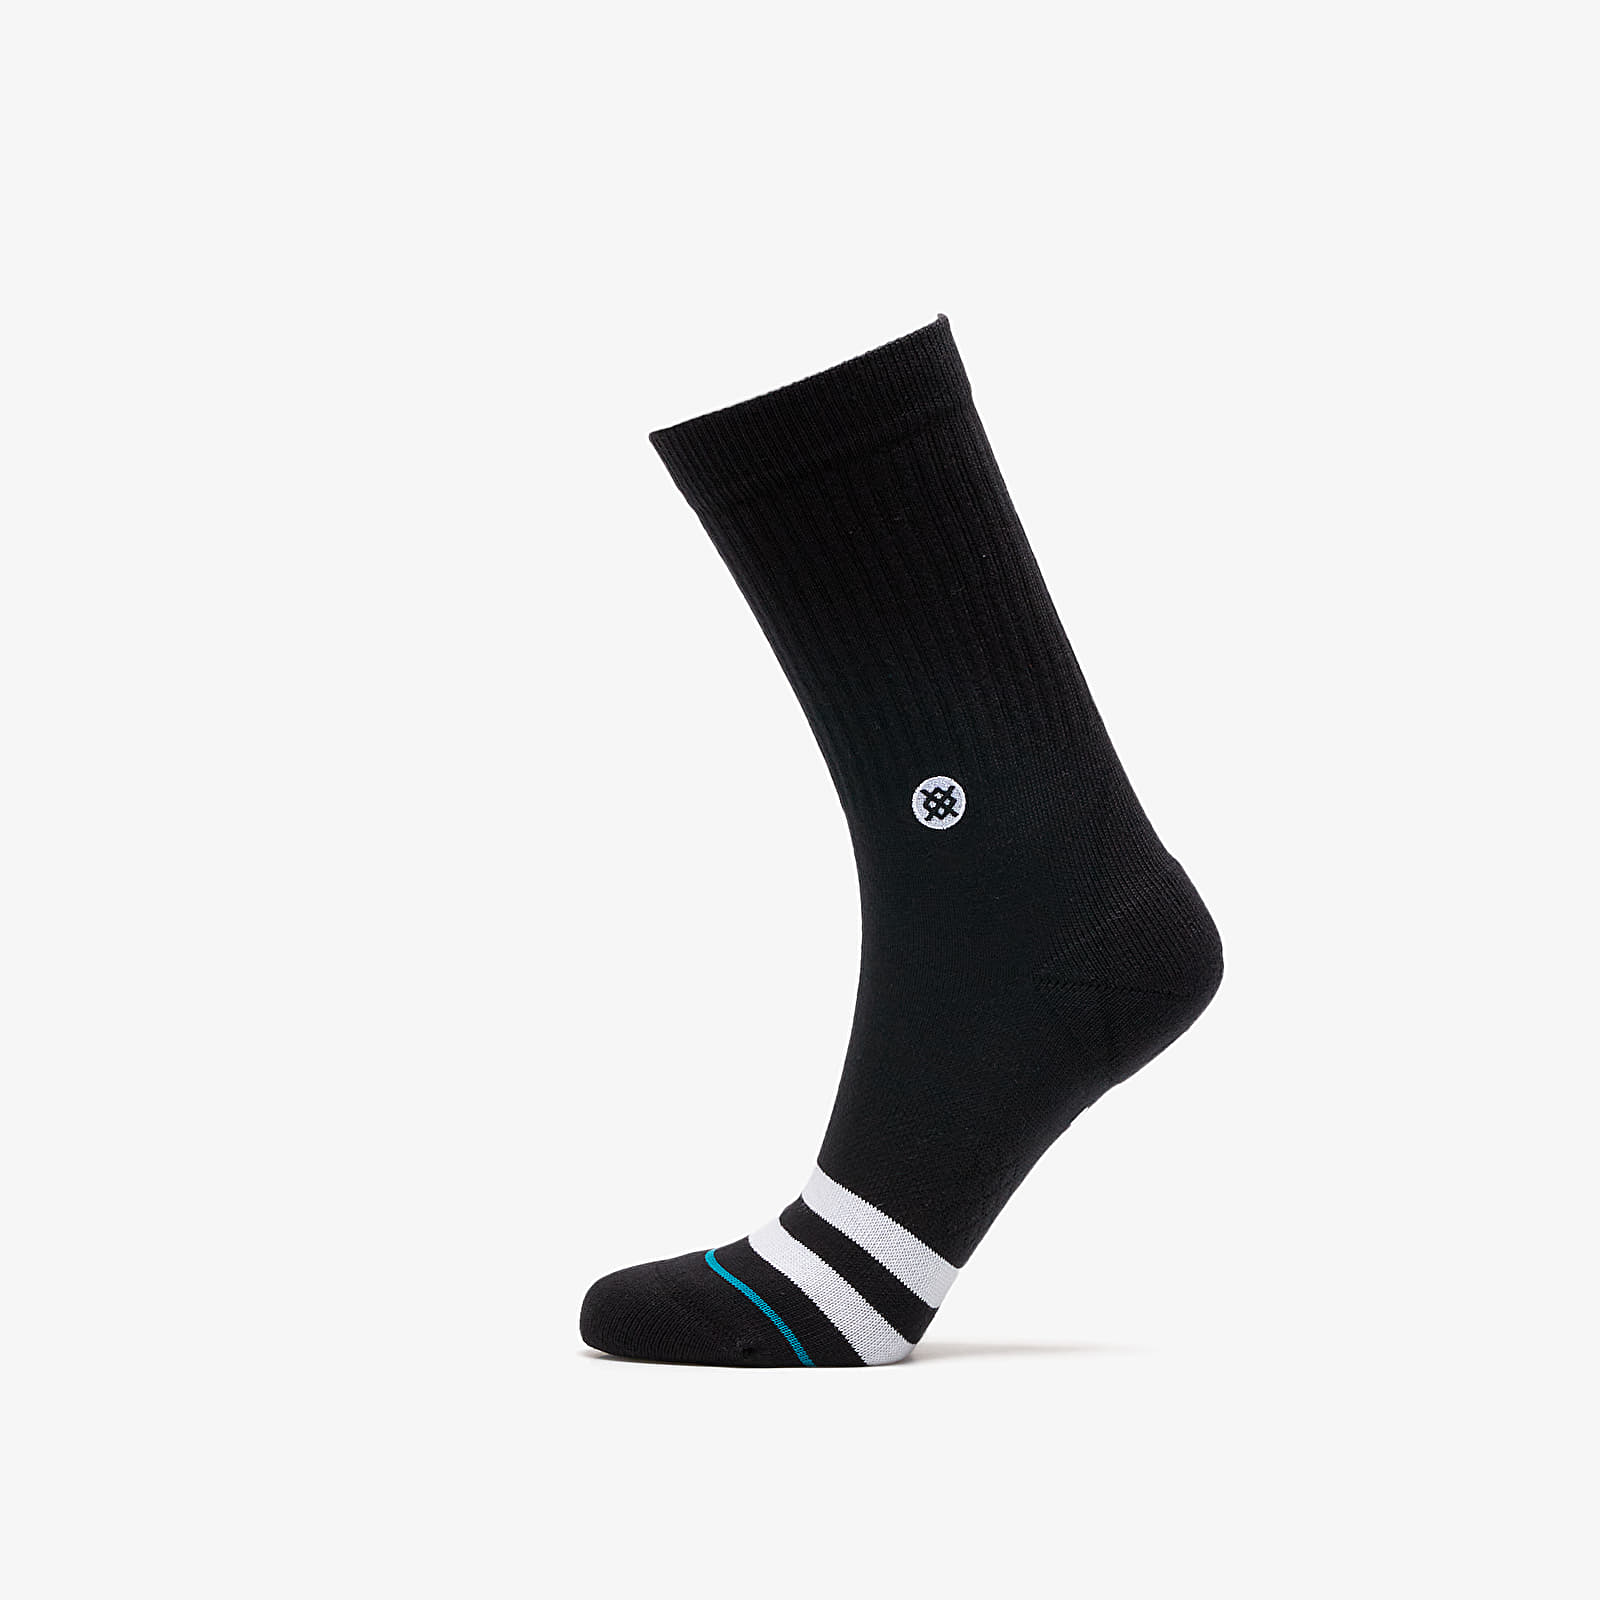 Socks Stance OG Socks Black